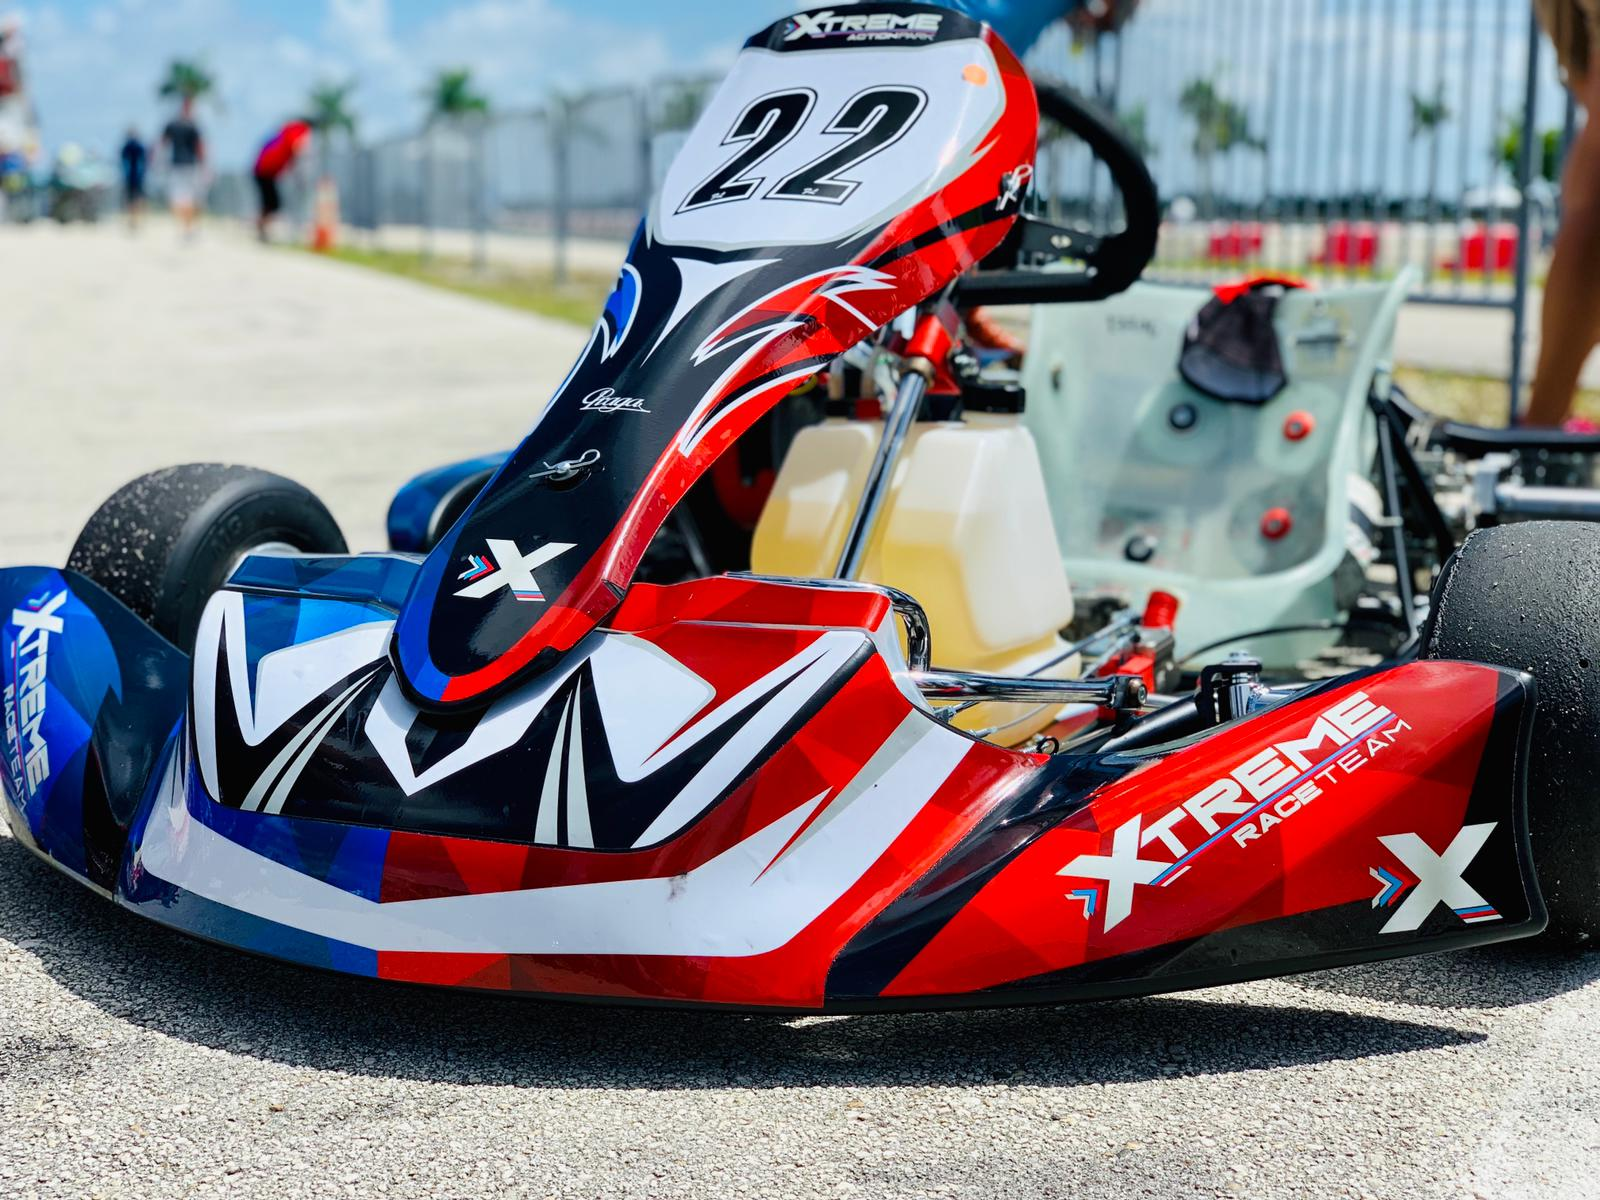 Xtreme Race Team Go Kart